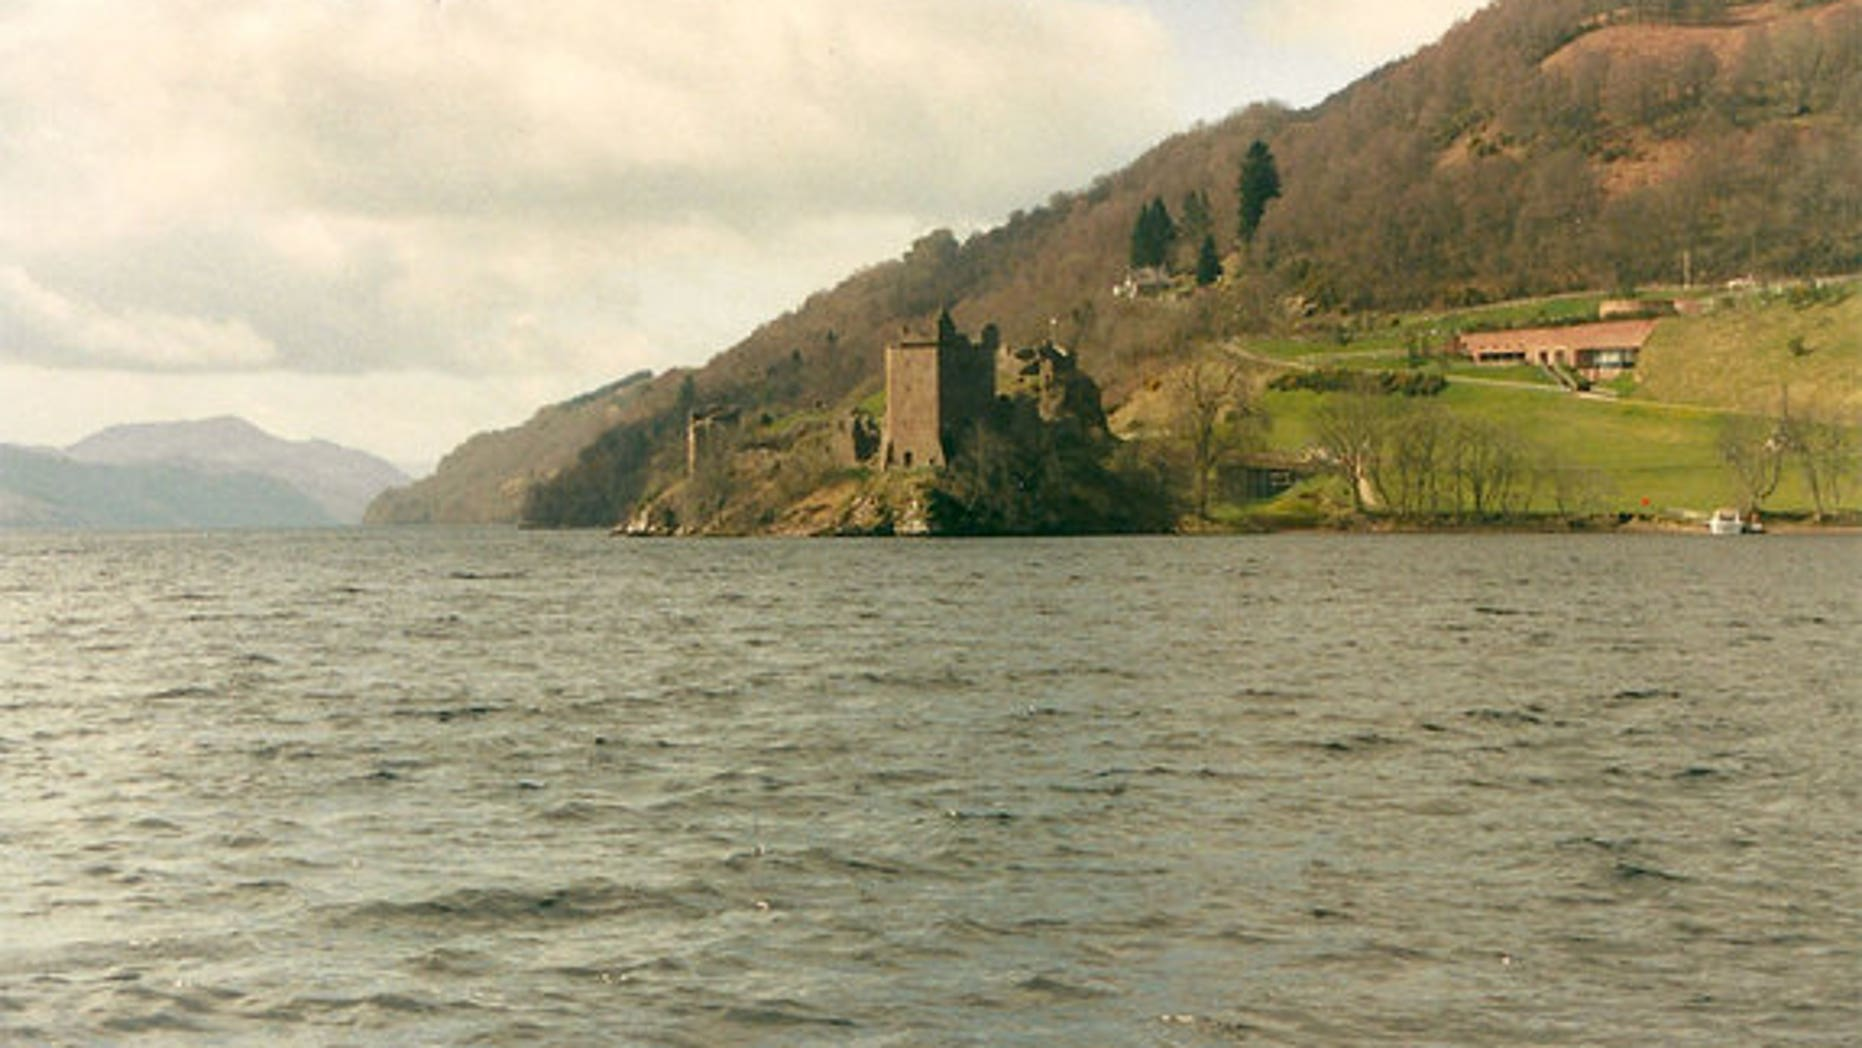 """The photo of the """"monster"""" was taken from the woody shoreline of Loch Ness lake in the Highlands of Scotland, shown here with Urquhart Castle in the background."""